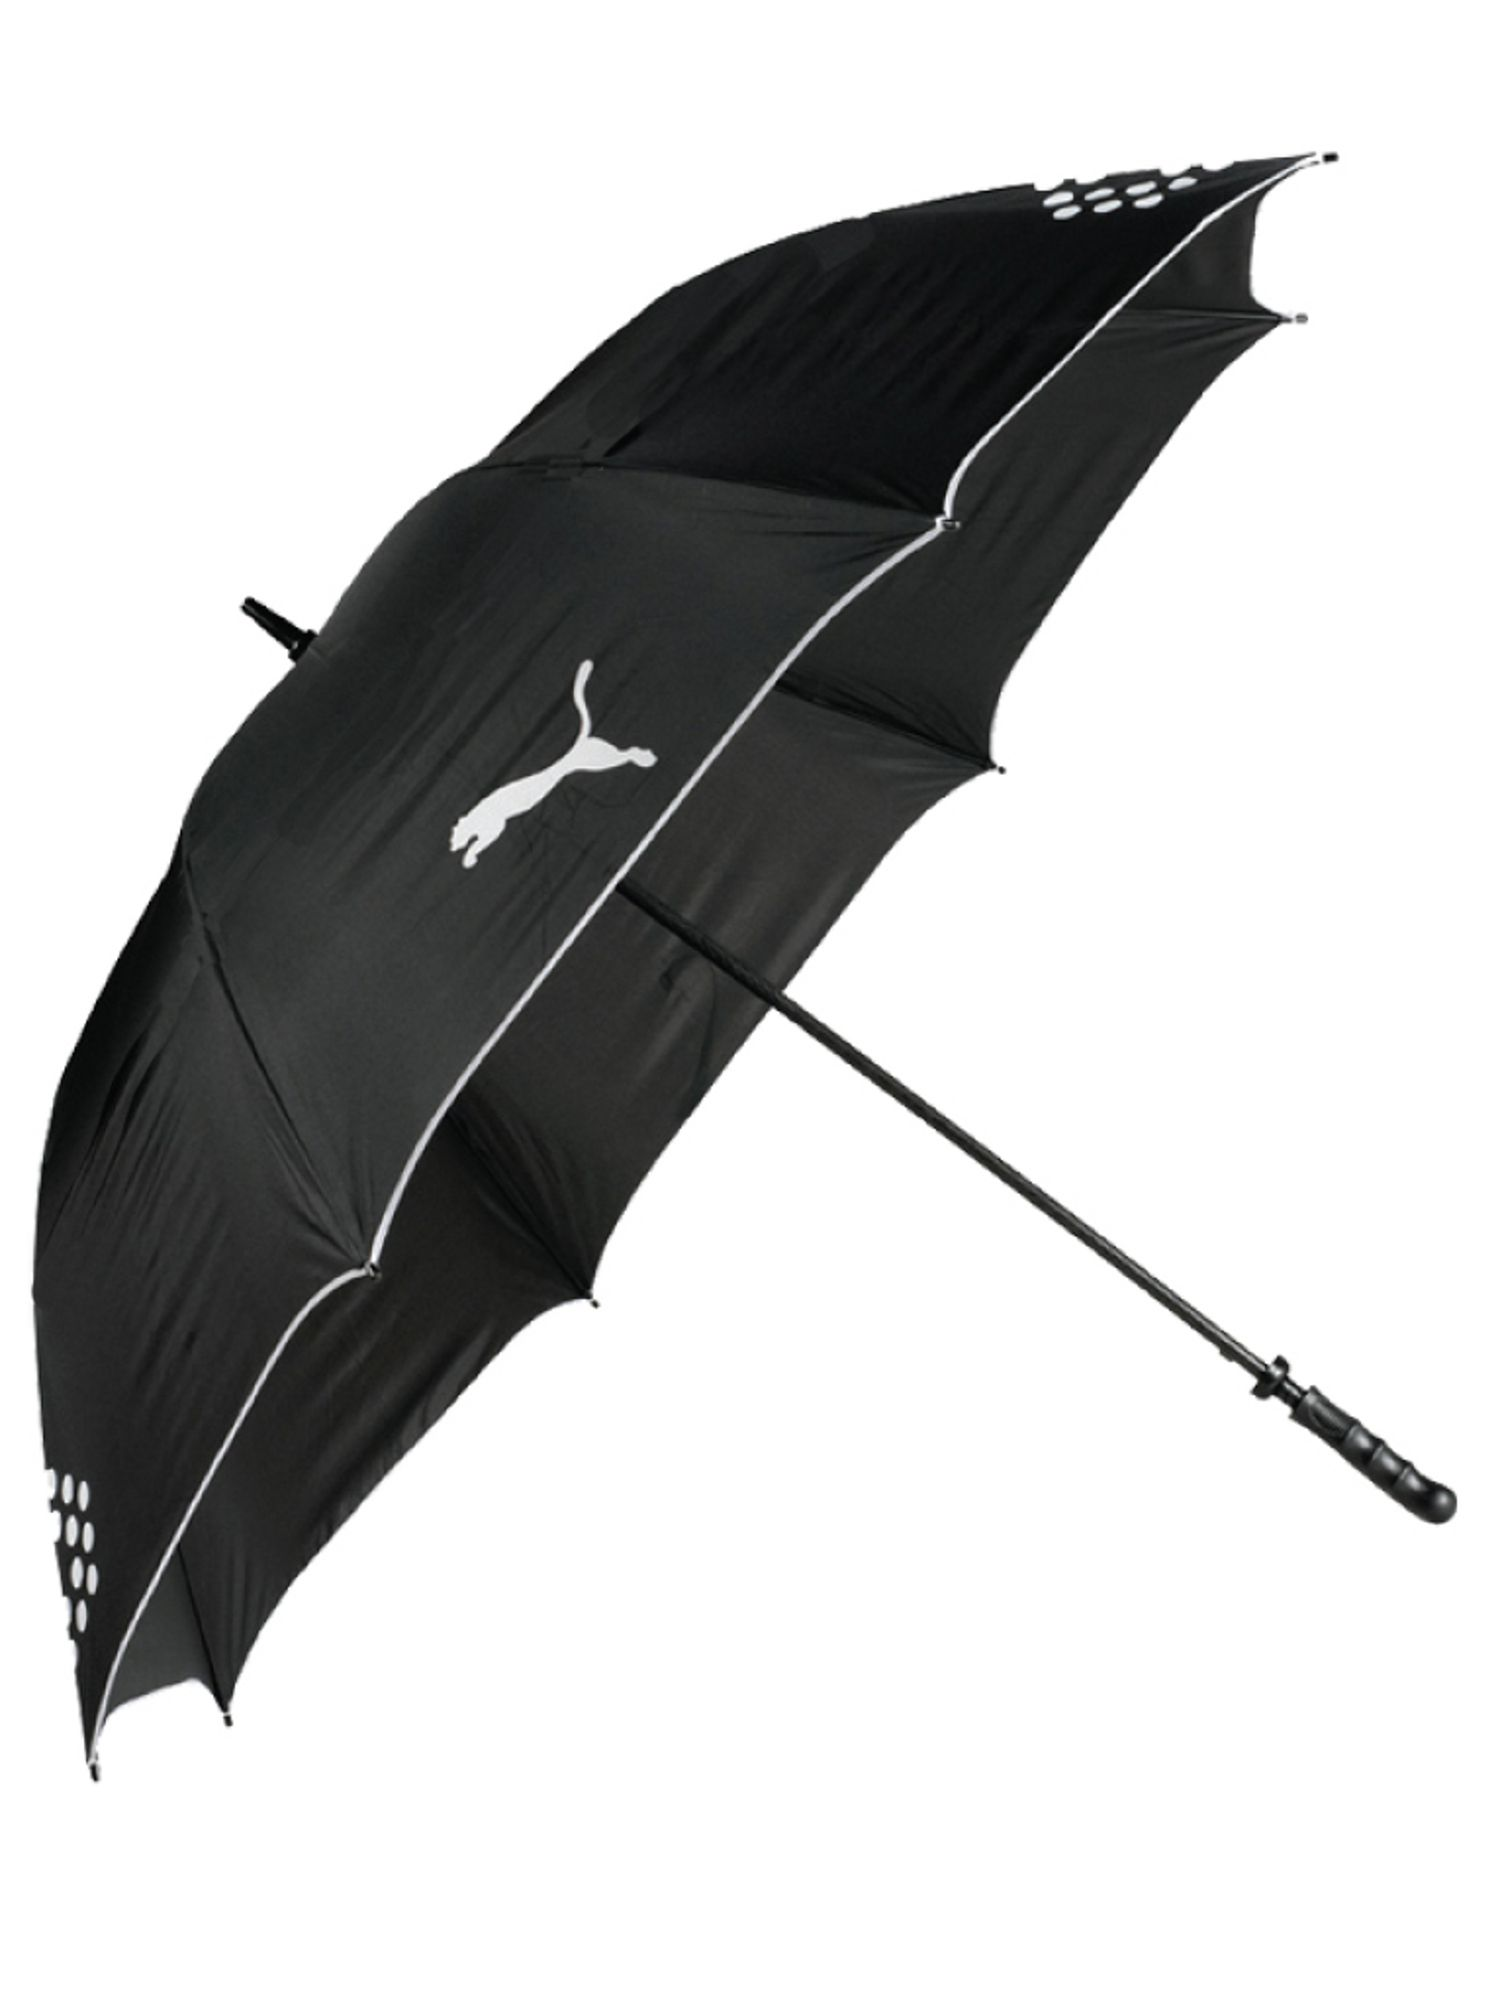 Storm umbrella - 68 - double canopy